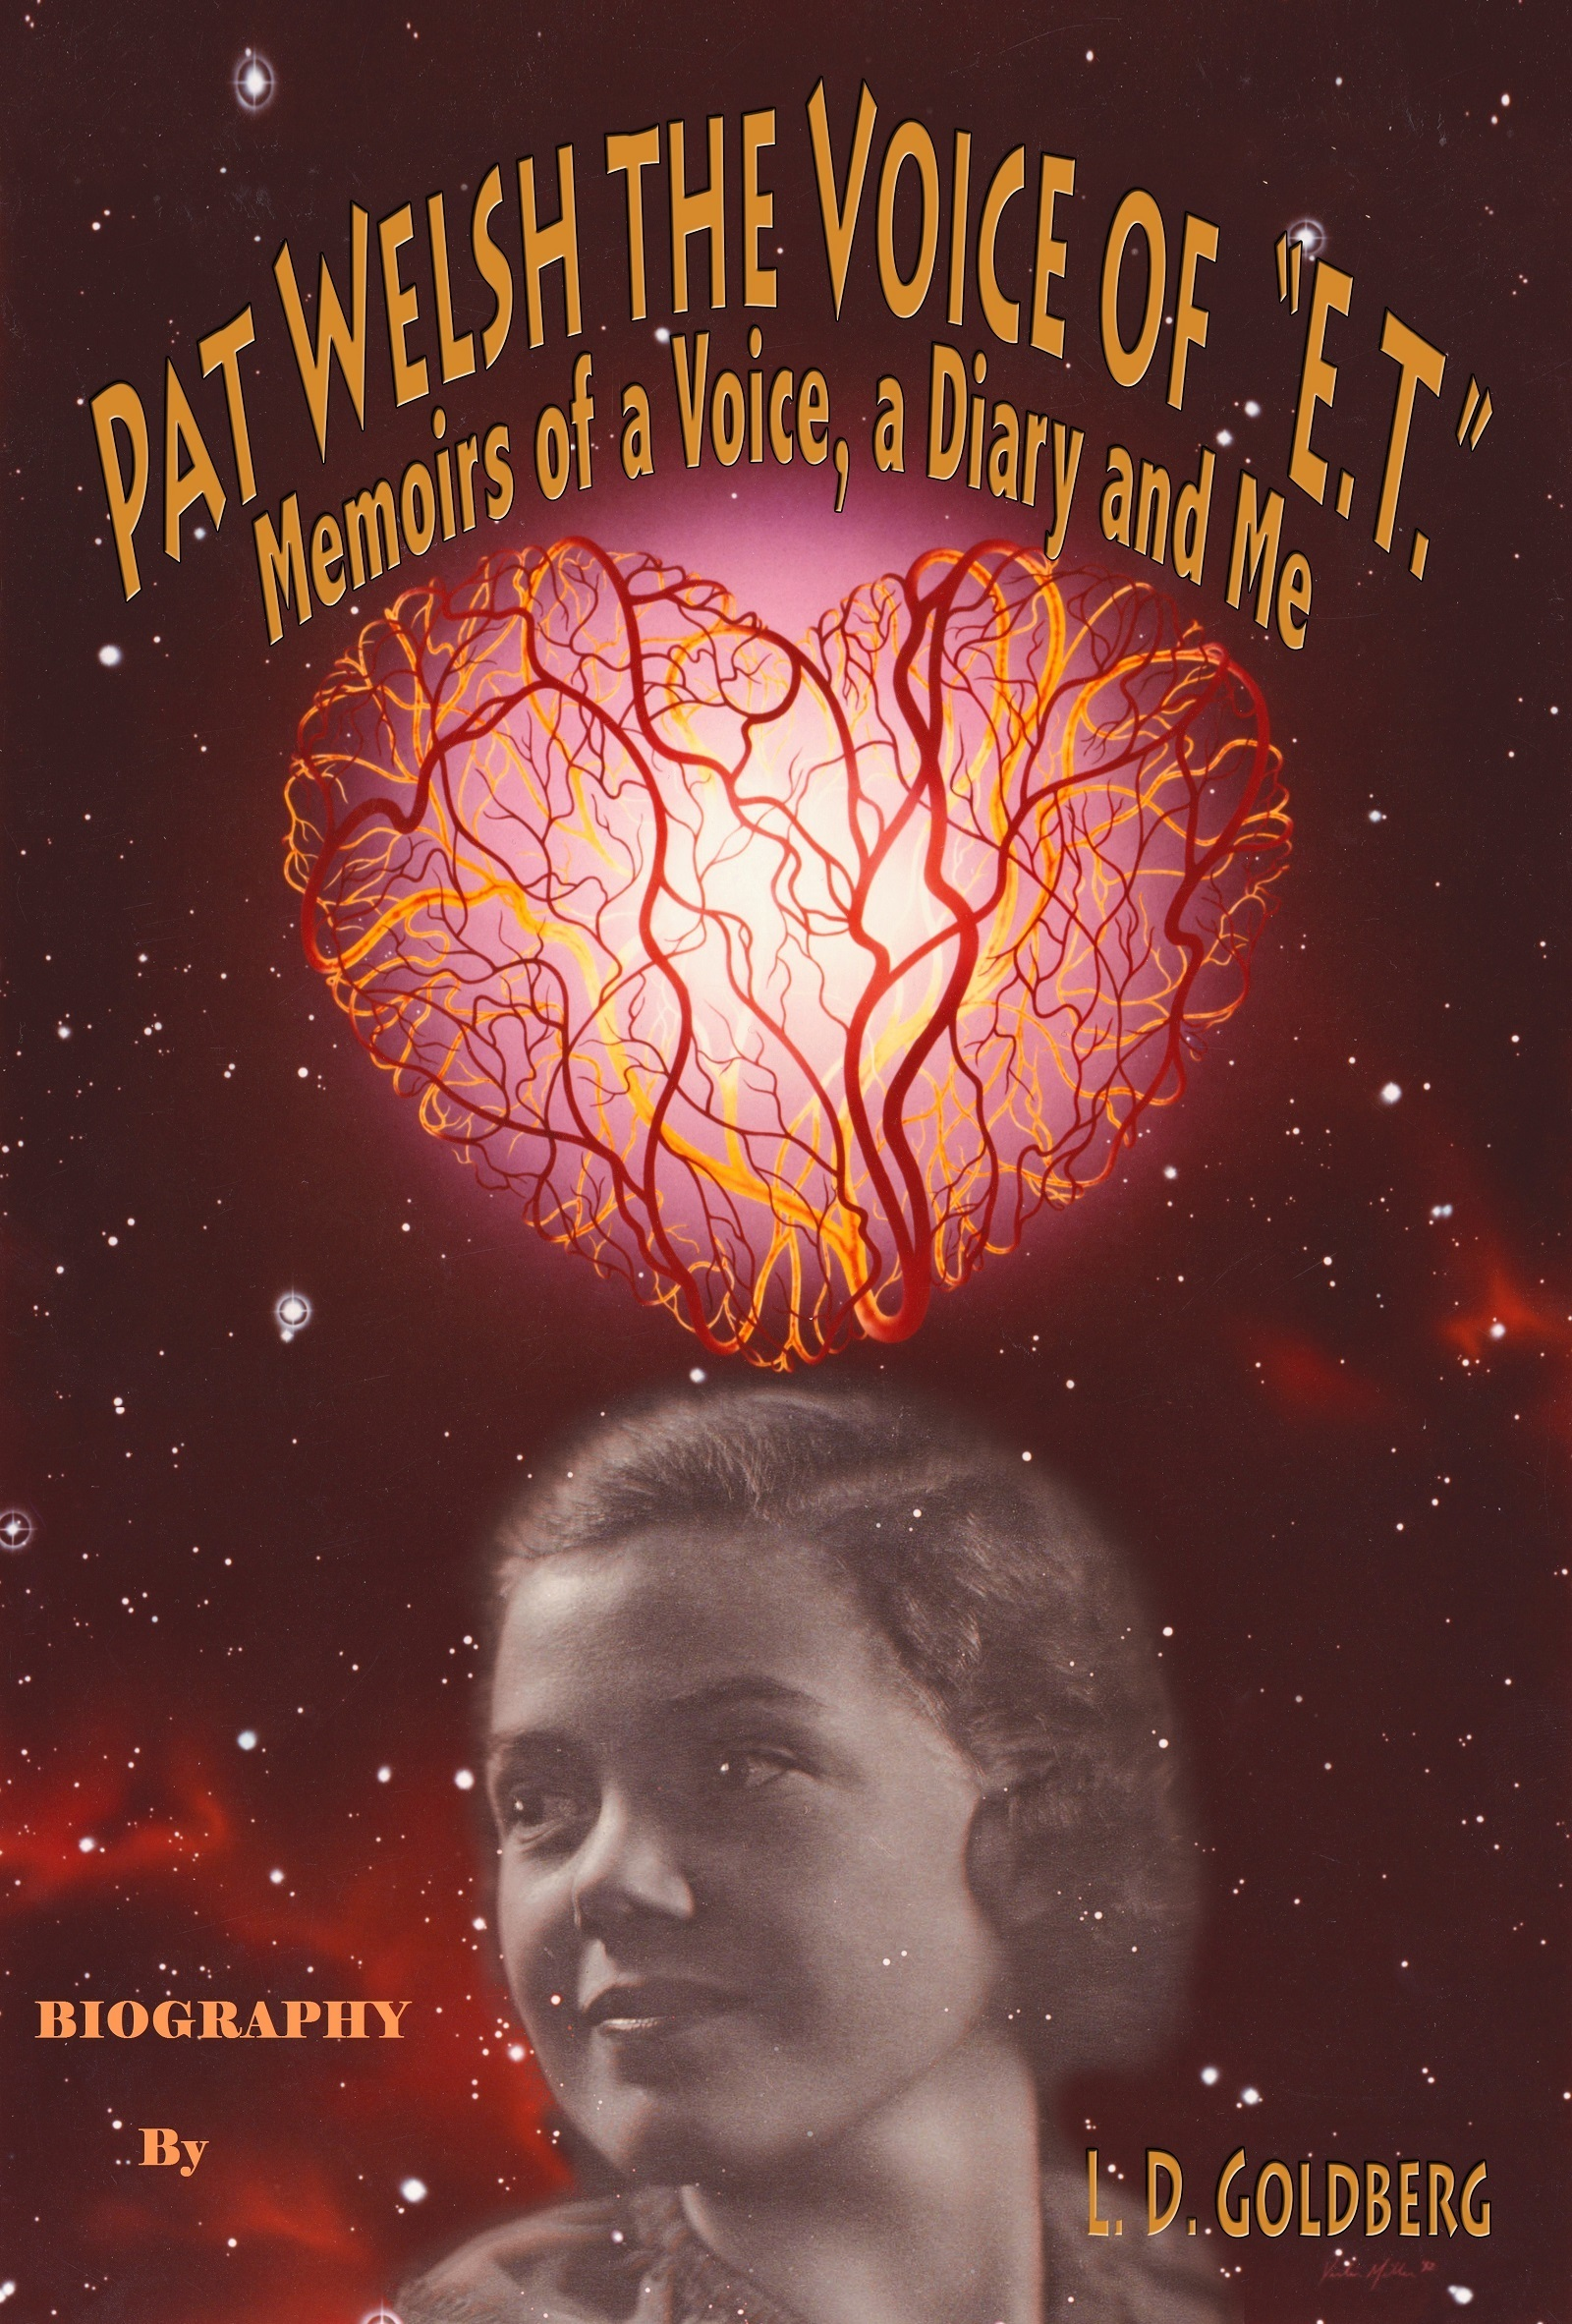 """Pat Welsh: The Voice of """"E. T."""" Memoirs Of A Voice, A Diary And Me  by  L. D. Goldberg"""